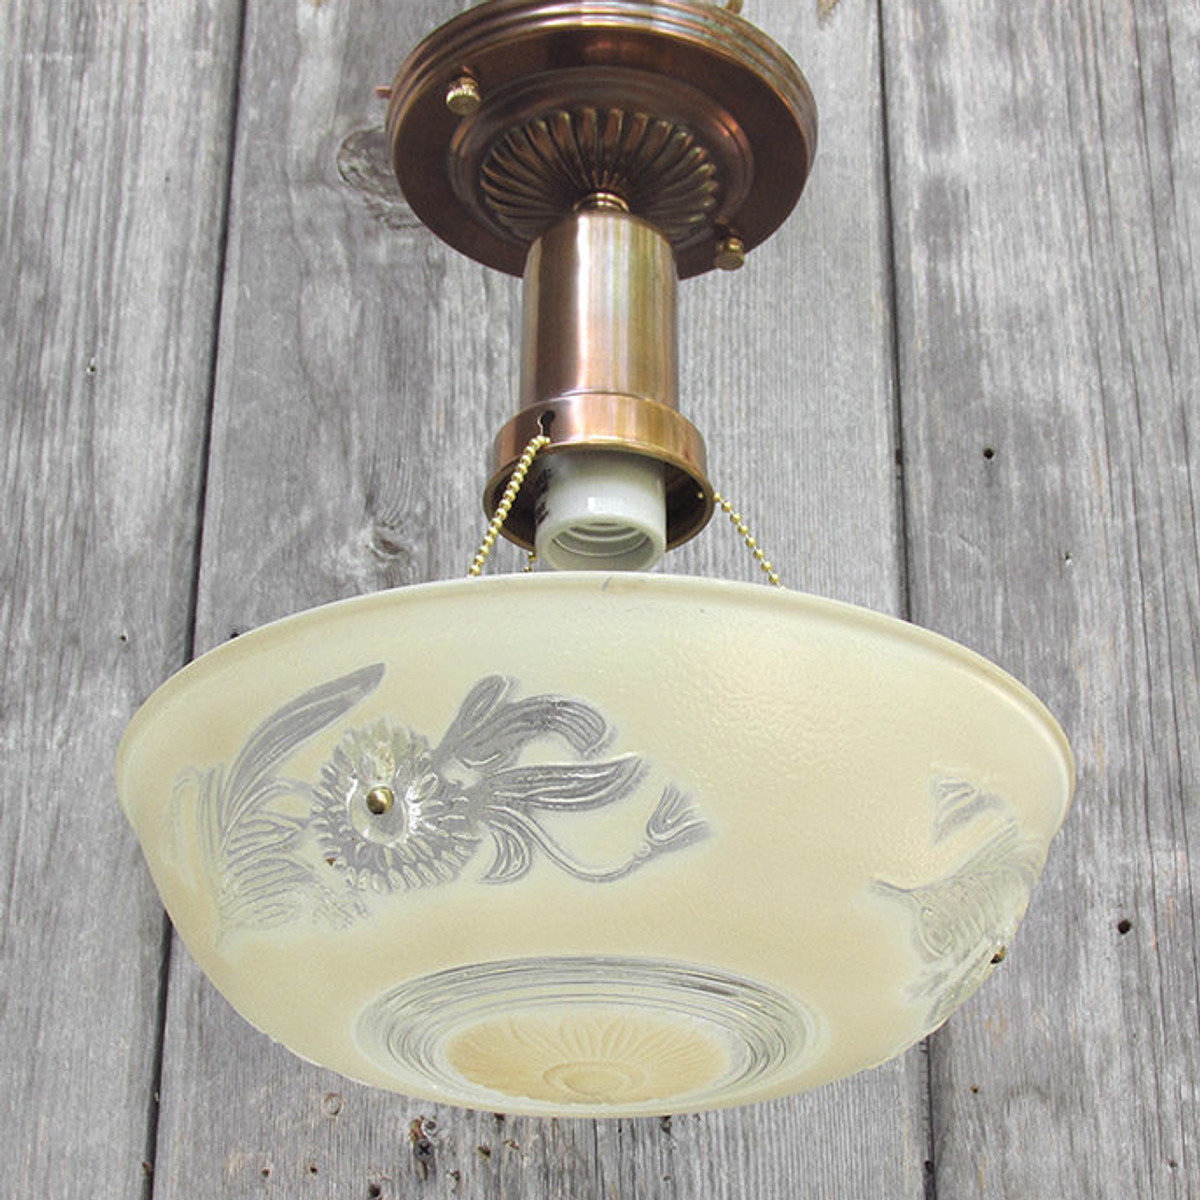 L15291 - Art Moderne Ceiling Light Fixture With Antique Bowl Shade